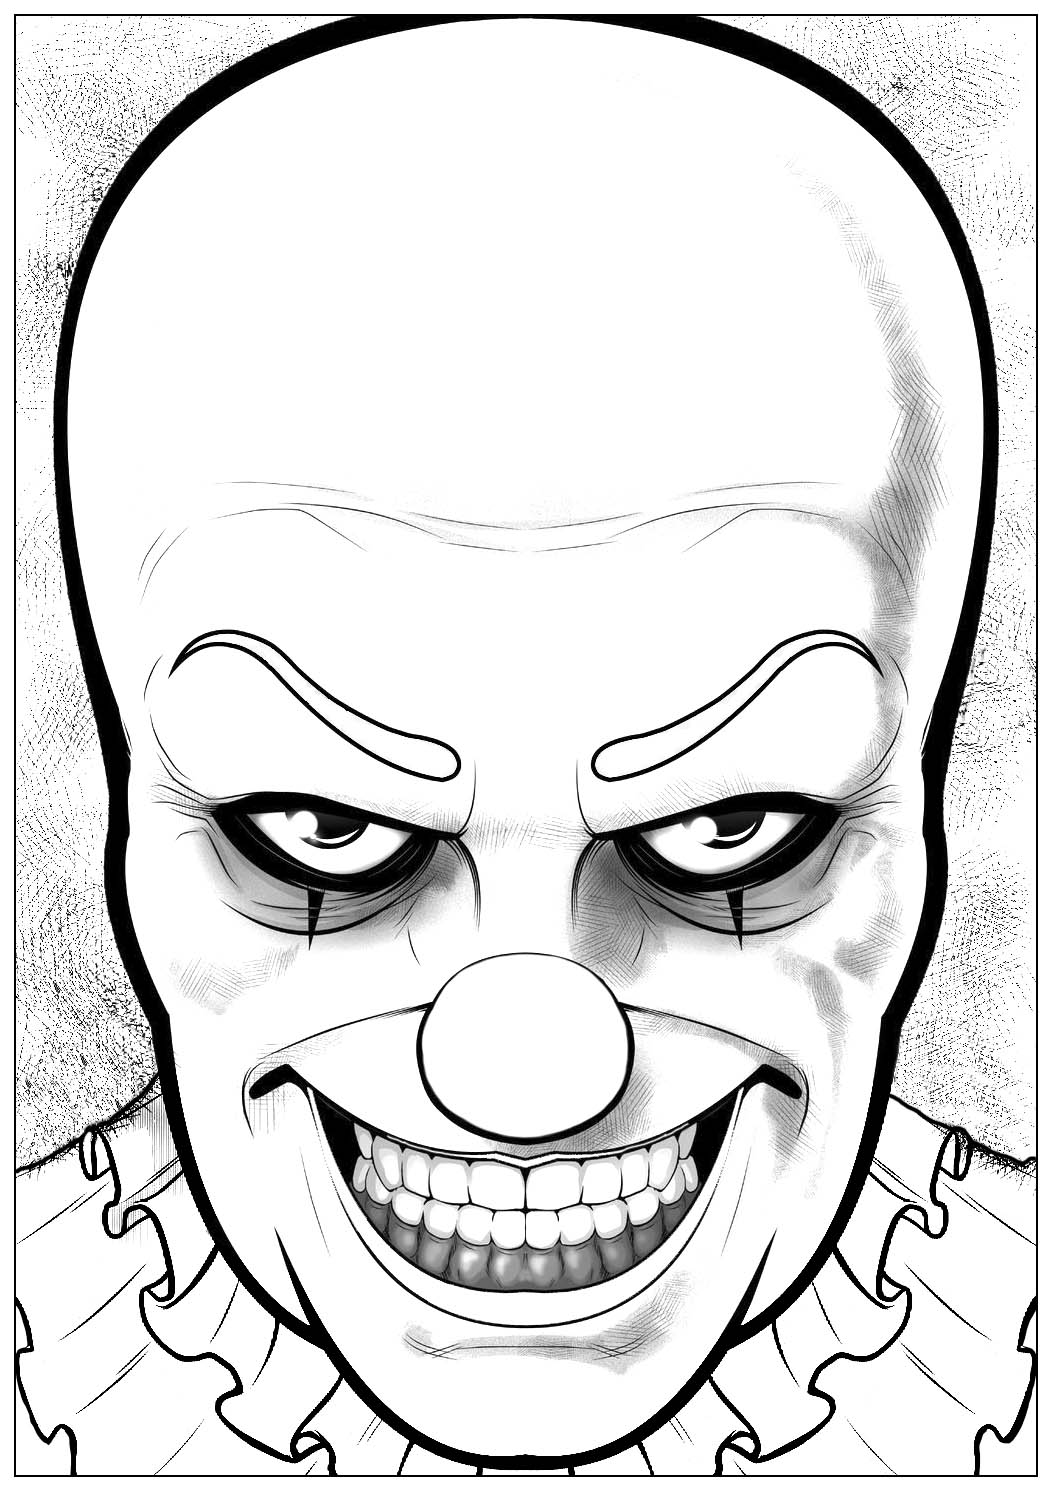 Would You Dare To Color This Horrible Pennywise The Clown From It